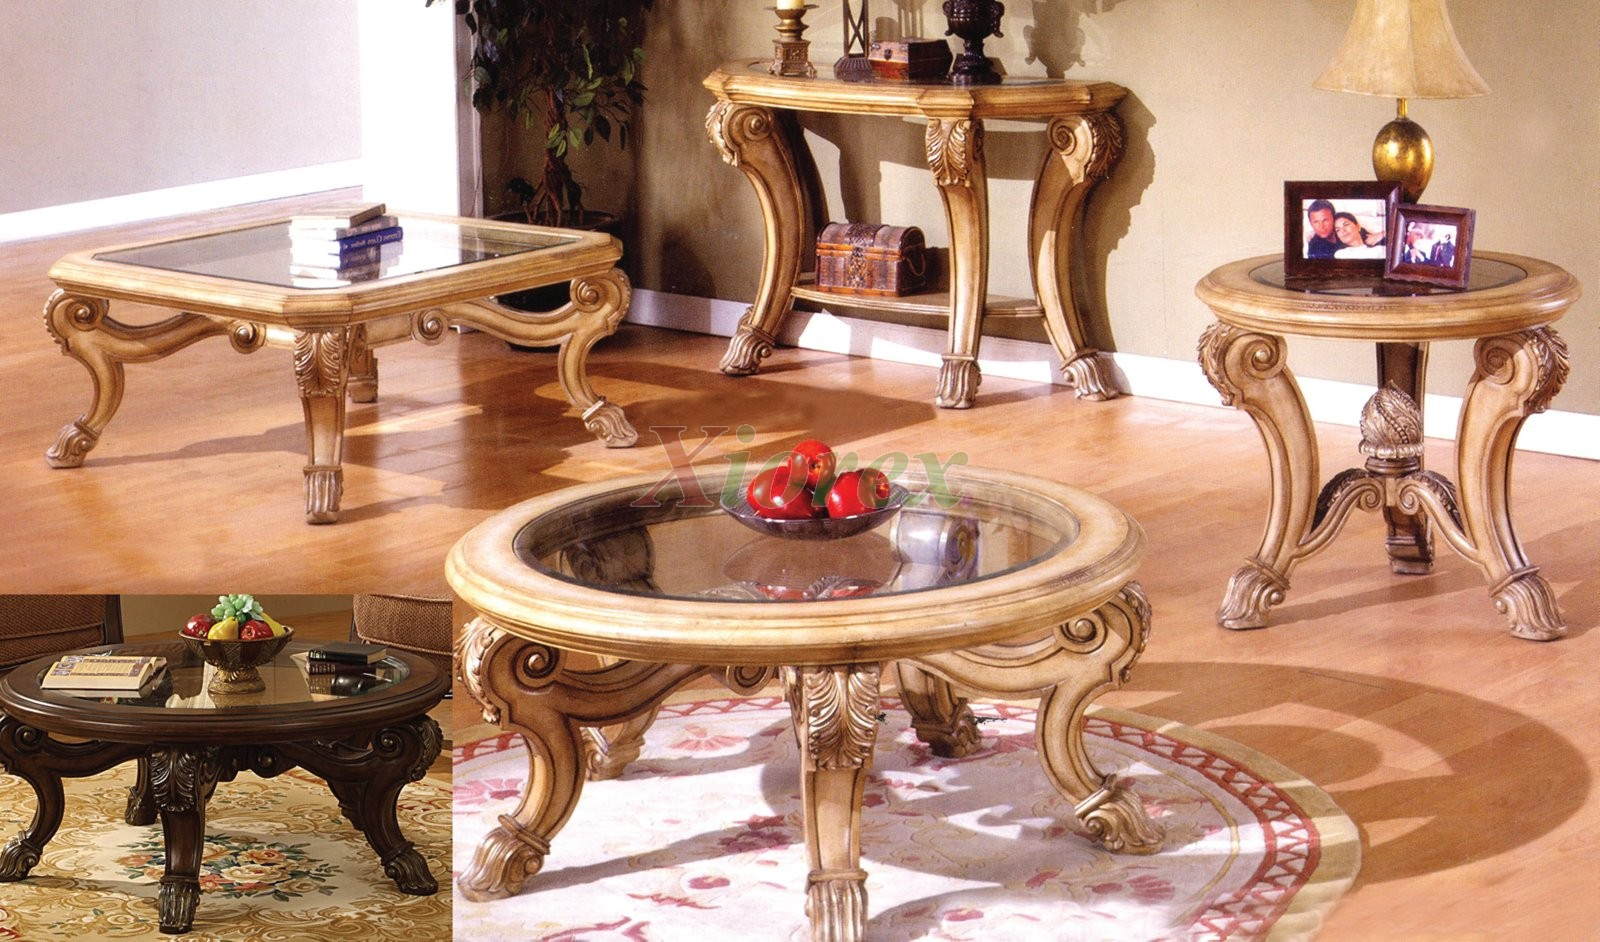 Glass Top Coffee Tables And End Tables Corvi Coffee Table Sets Mississauga Include Either A Circular Or A Square Coffee Table In Dark Brown And Honey (Image 5 of 10)